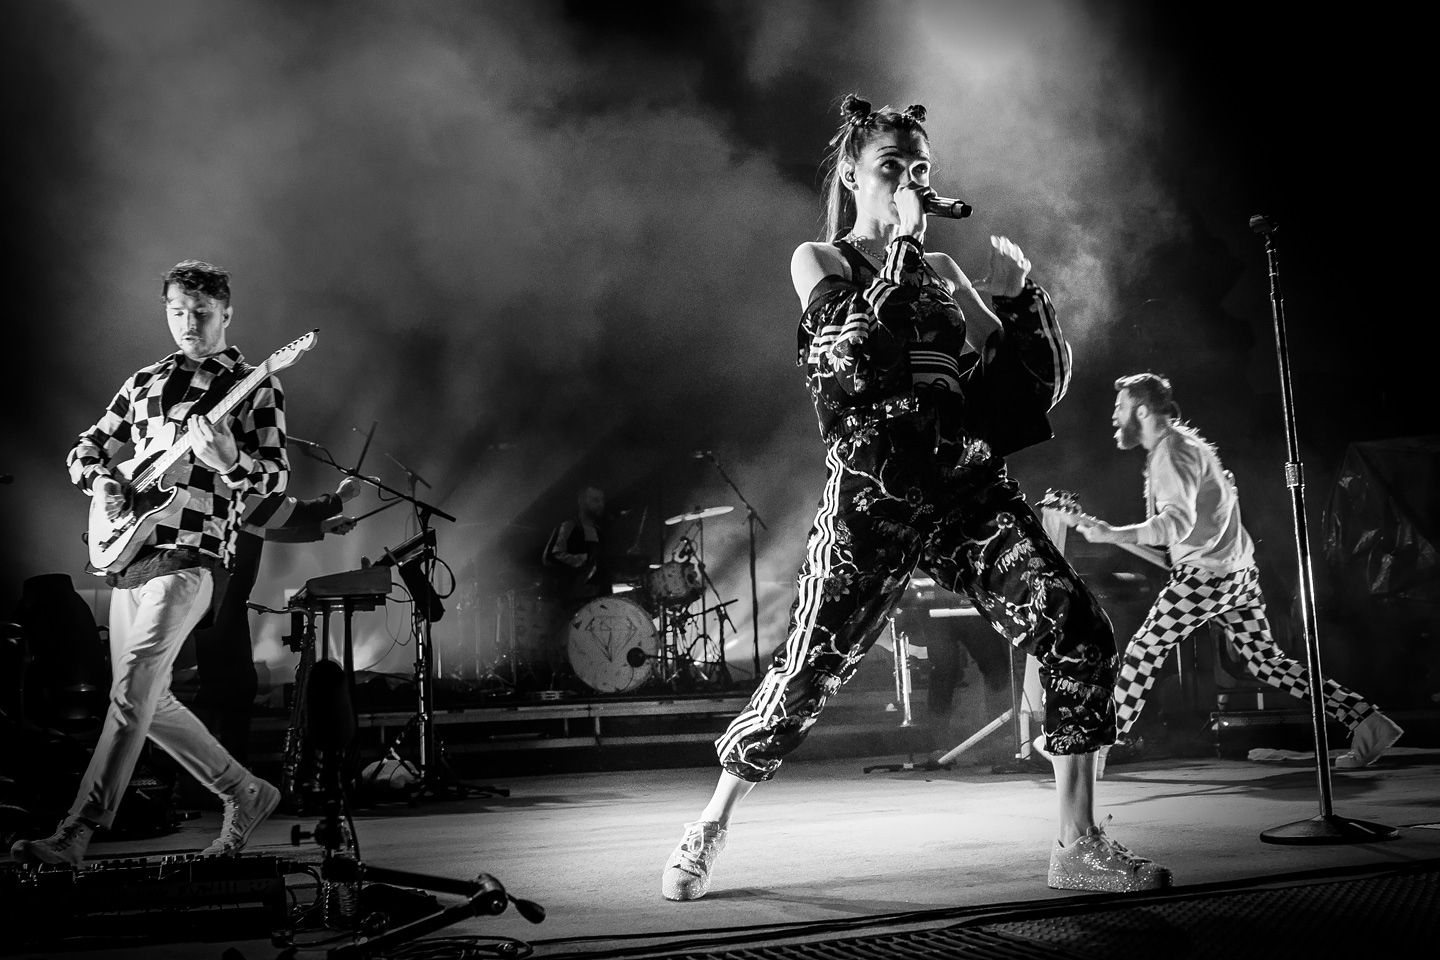 X-Ambassadors and MisterWives at Red Rocks in Denver, Colorado - Concert Photos